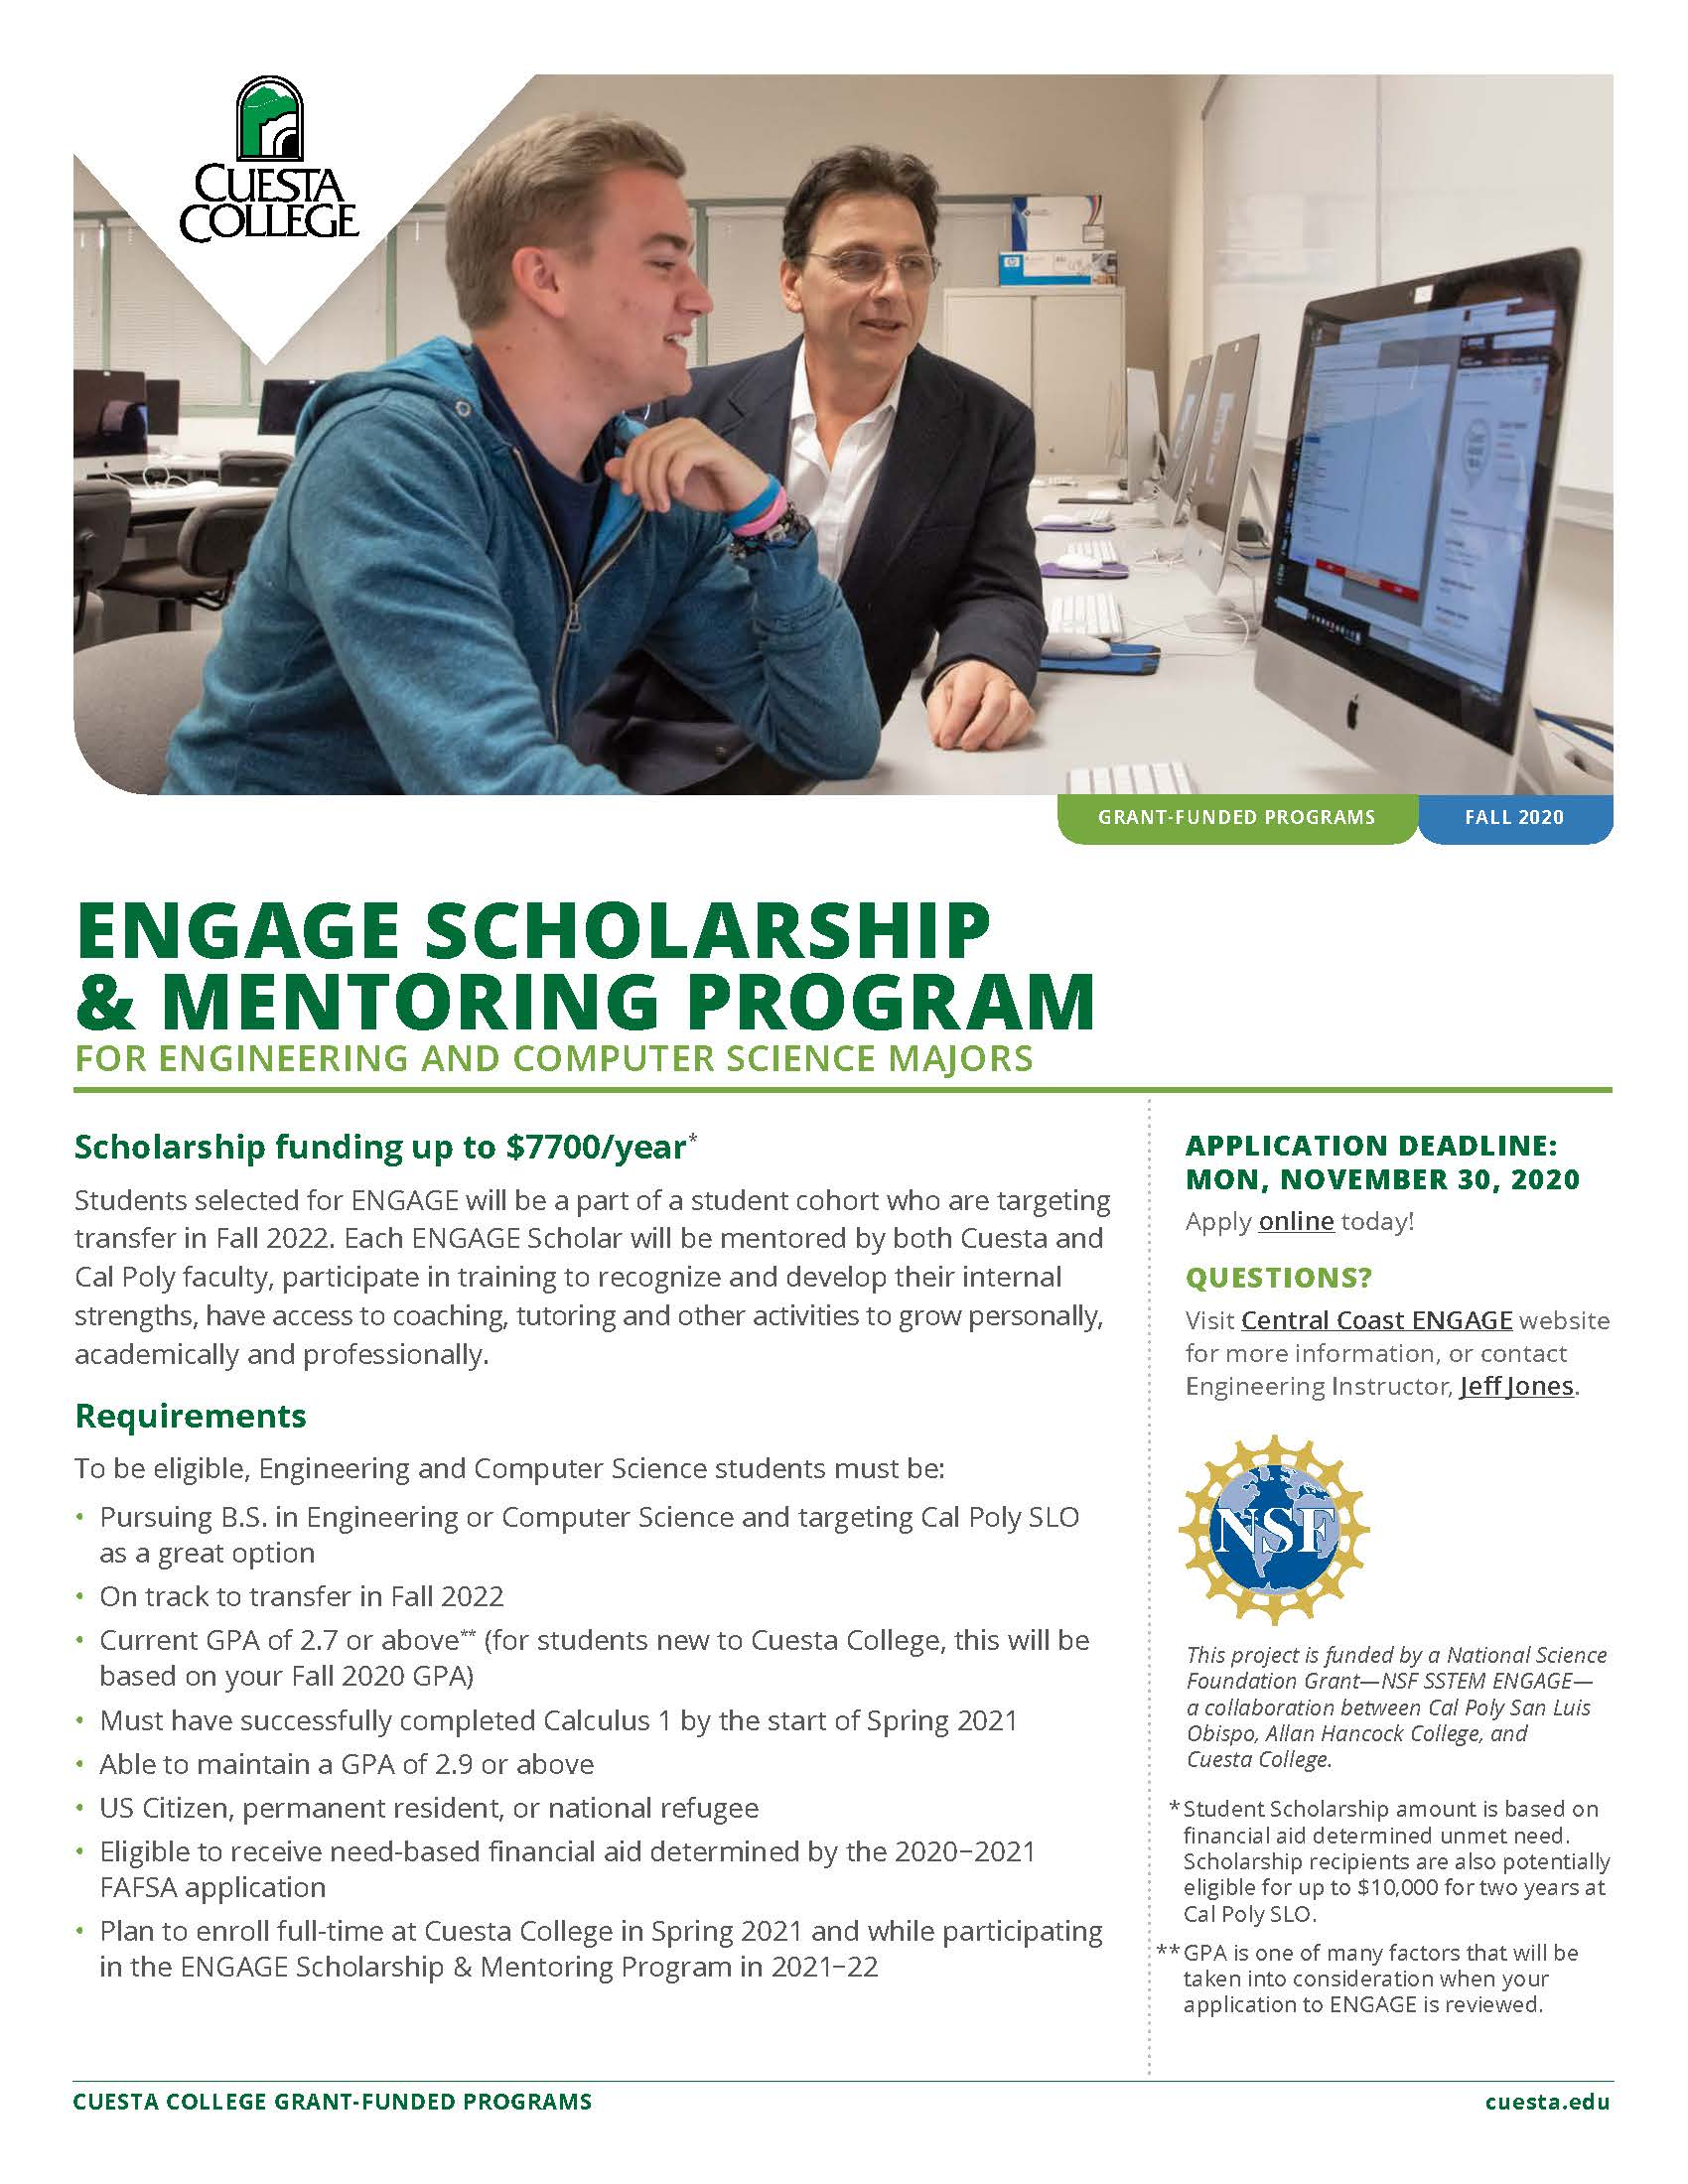 ENGAGE Scholarship and Mentoring Program Flyer